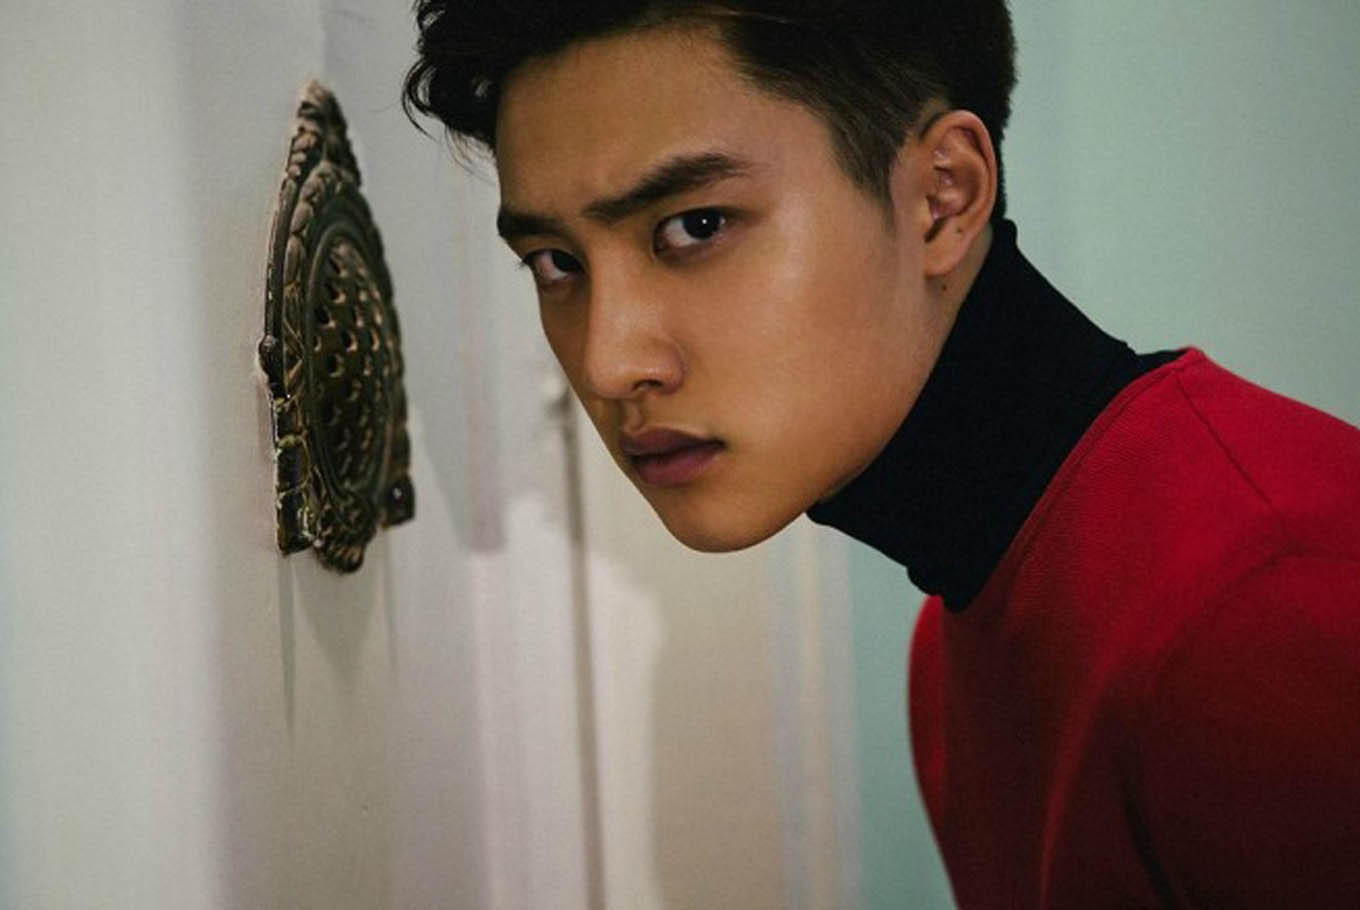 EXO's D.O. to star in new web drama